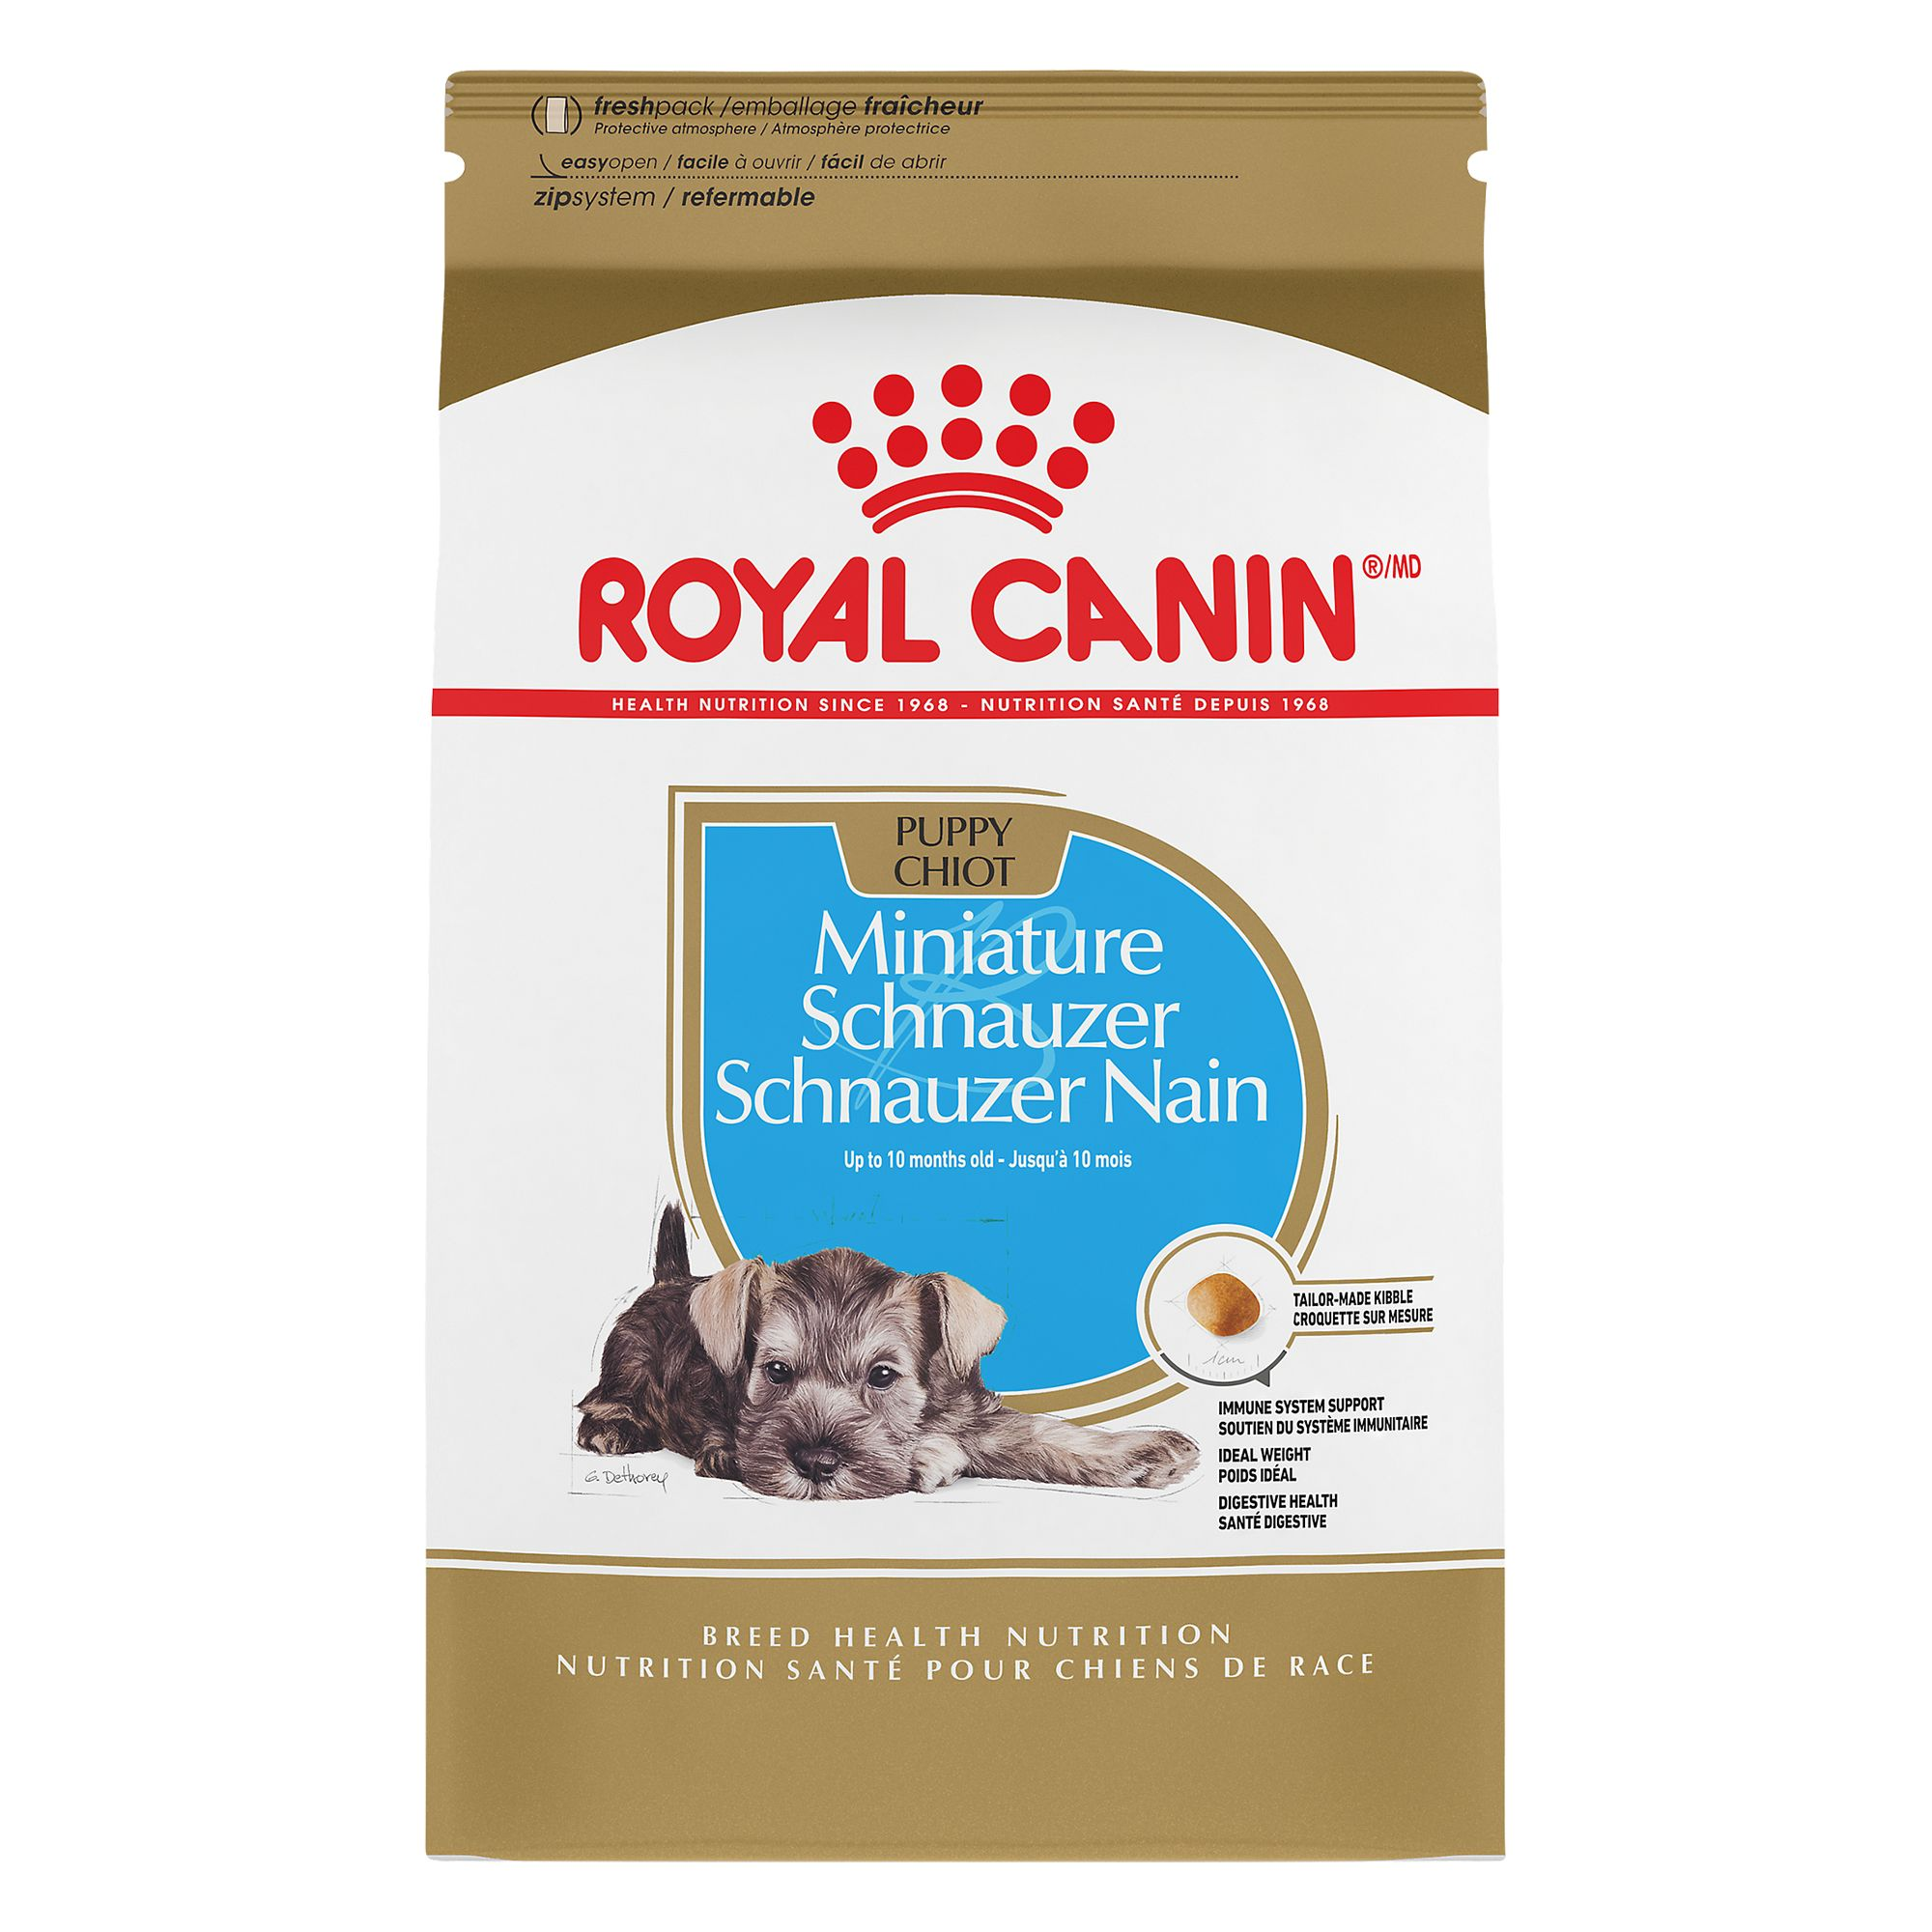 Royal Canin® Breed Health Nutrition, Miniature Schnauzer Puppy Food size: 2.5 Lb 5211540